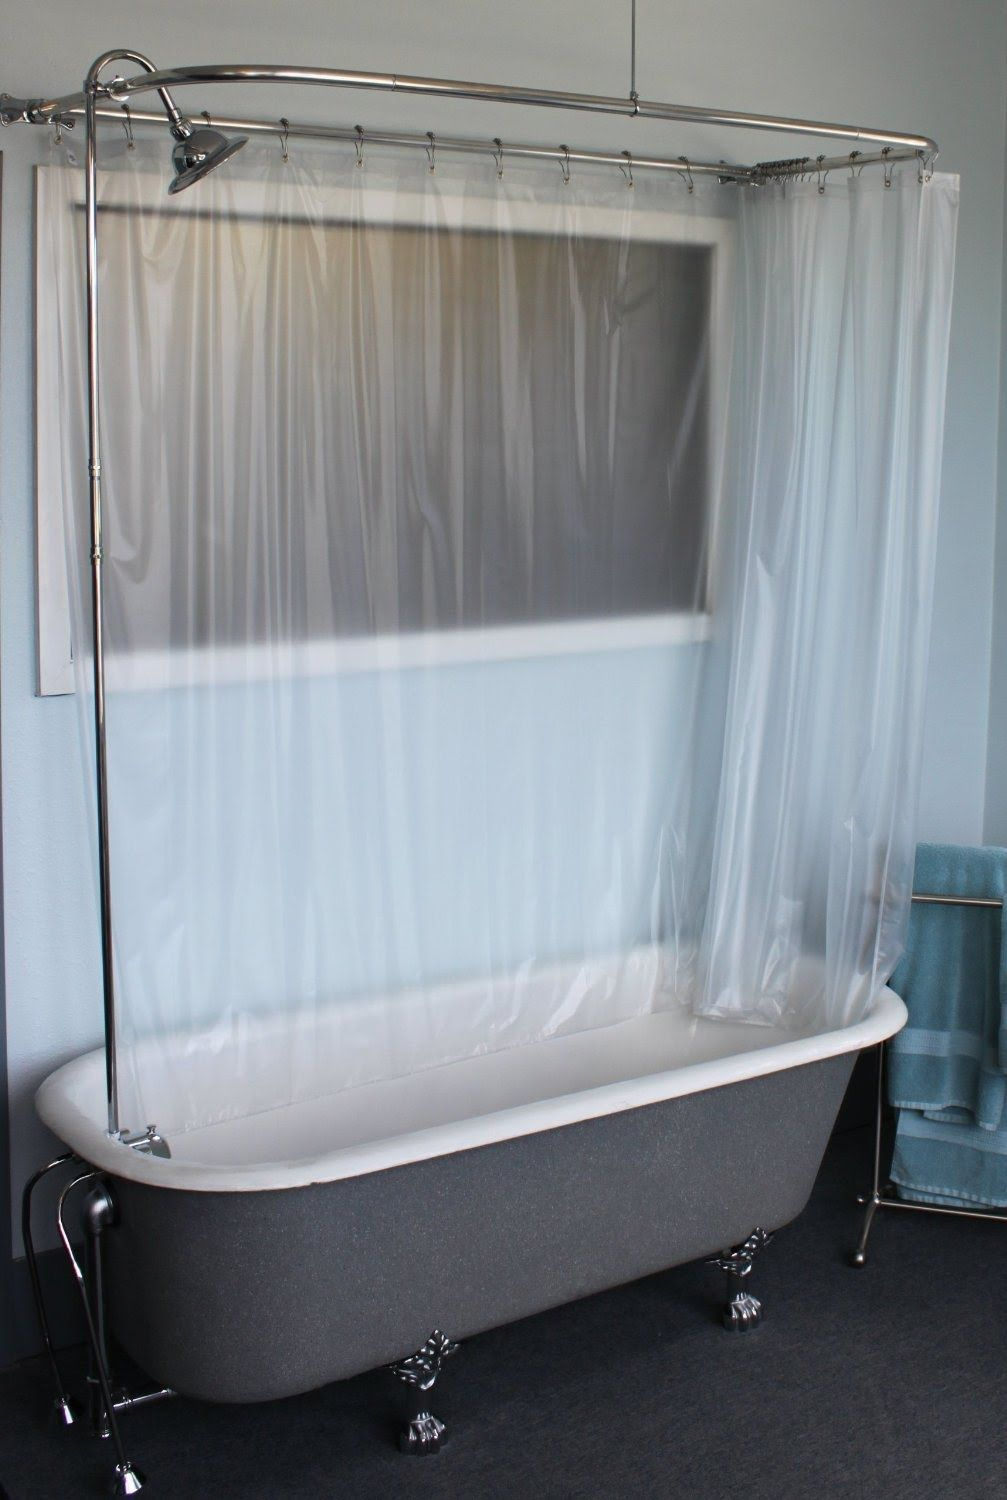 Claw Foot Tub Wall Mounted Shower Curtain Rod Add A Shower With in ...